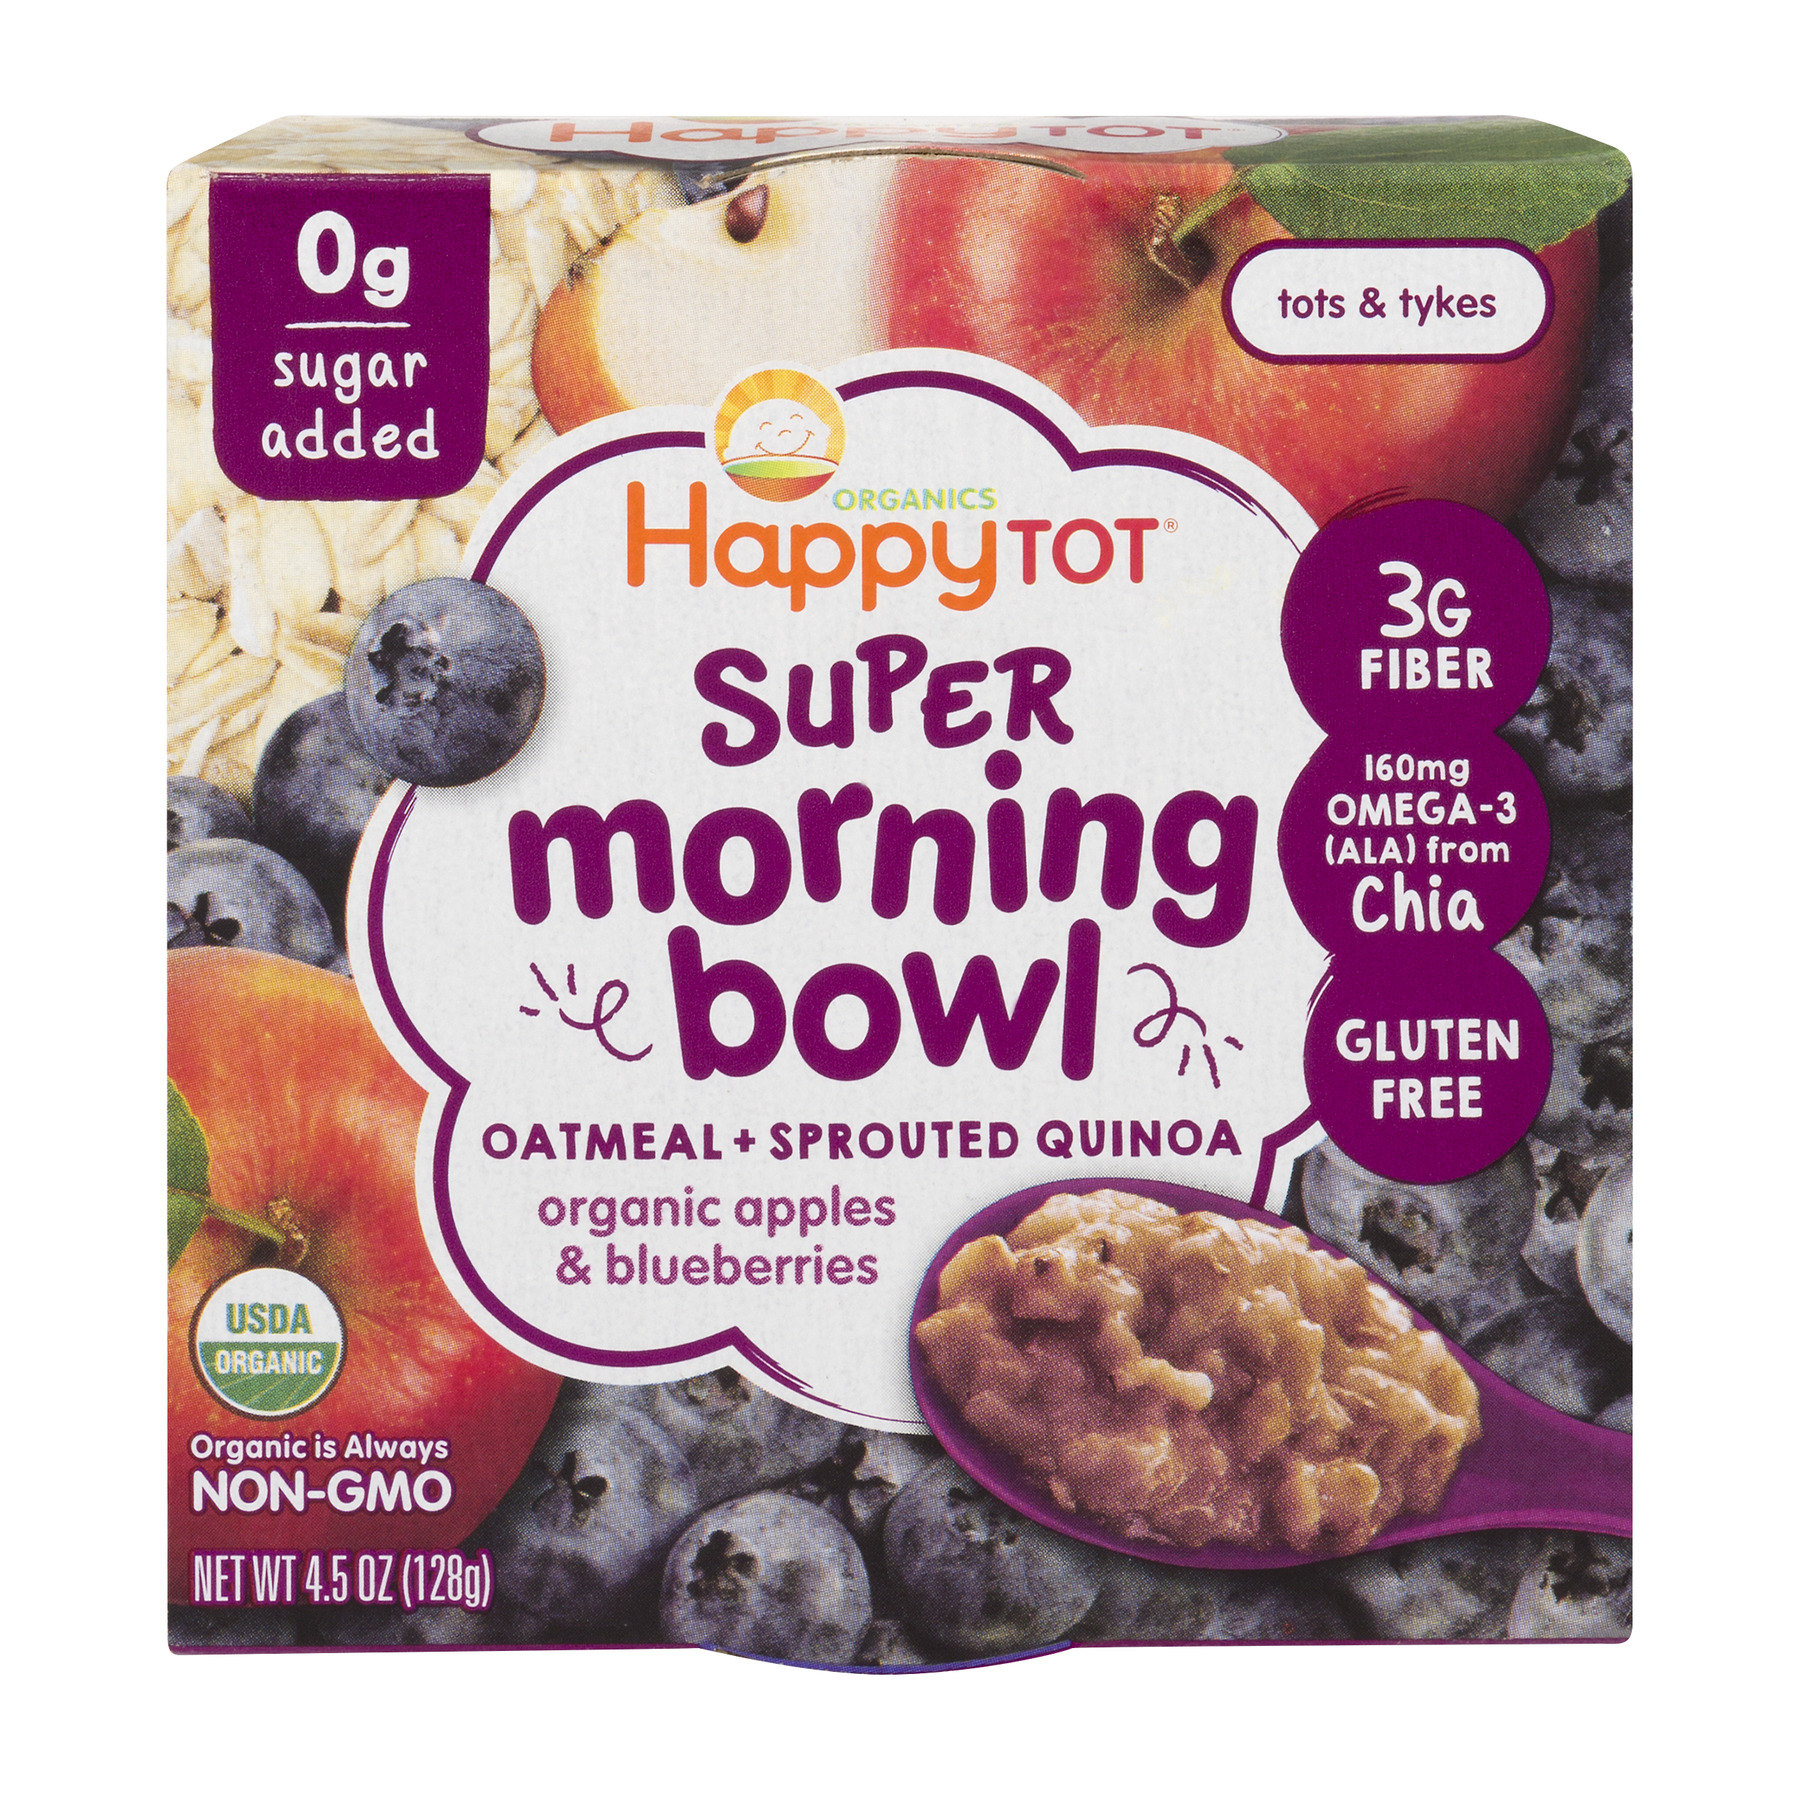 Happy Tot Organic Non-GMO Super Morning Bowl Oatmeal + Sprouted Quinoa Apples & Blueberries, 4.5 OZ